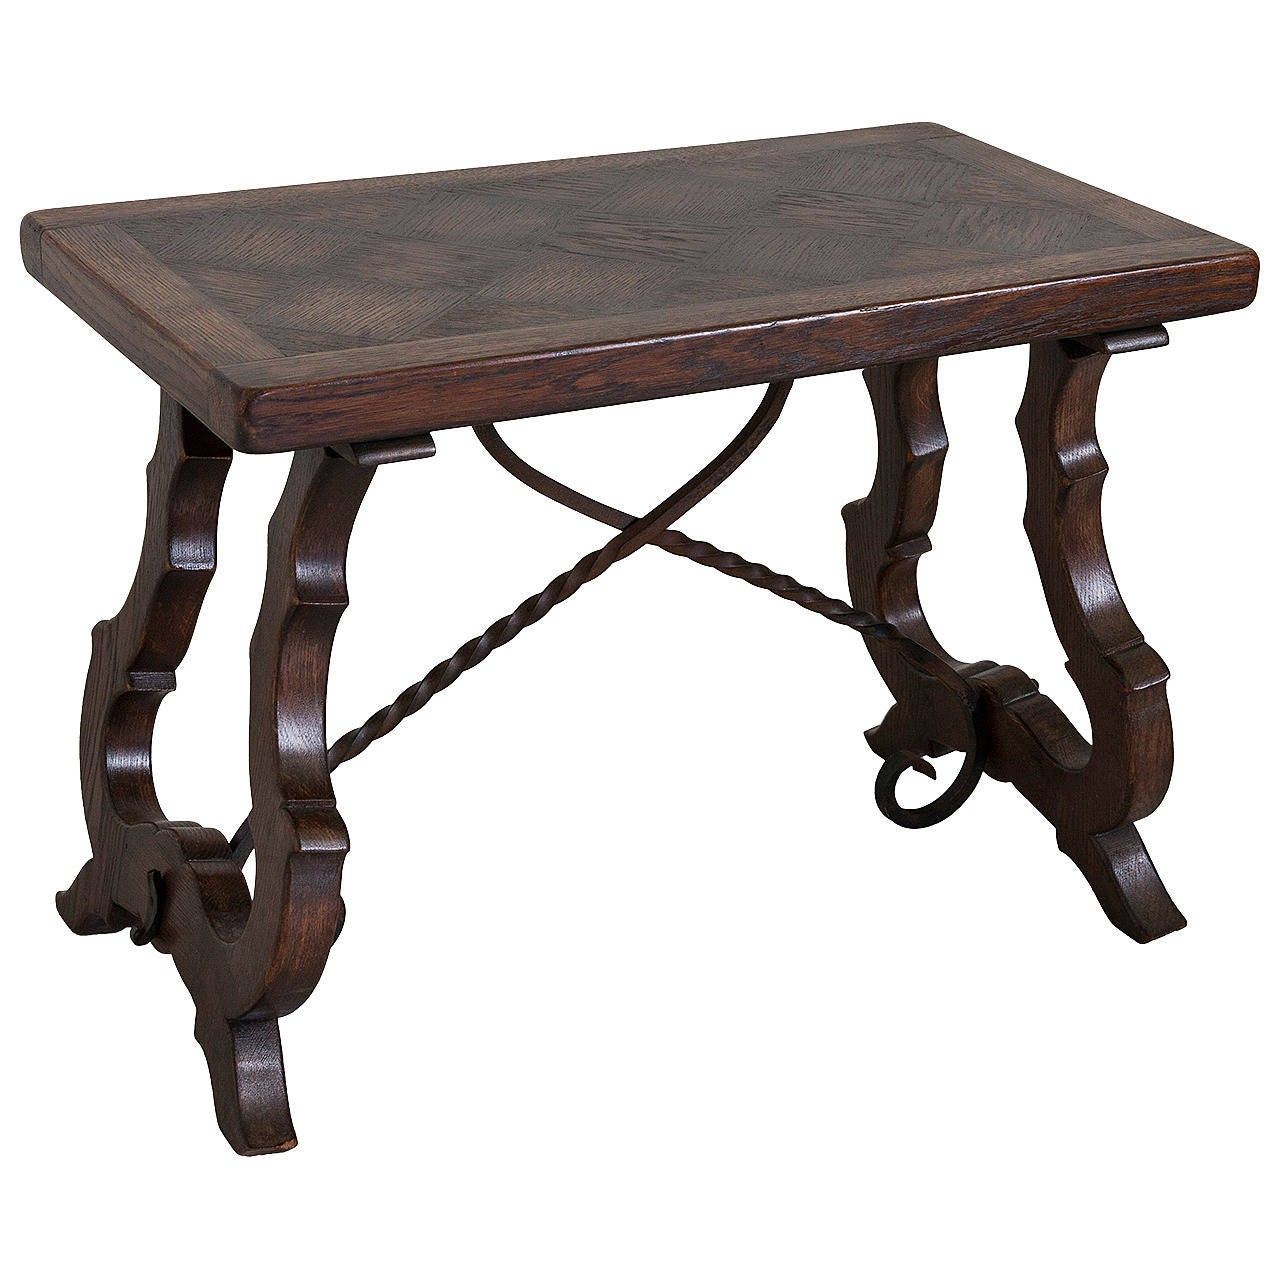 Solid Oak Spanish Style Bench Or Coffee Table With Iron Stretchers At 1stdibs